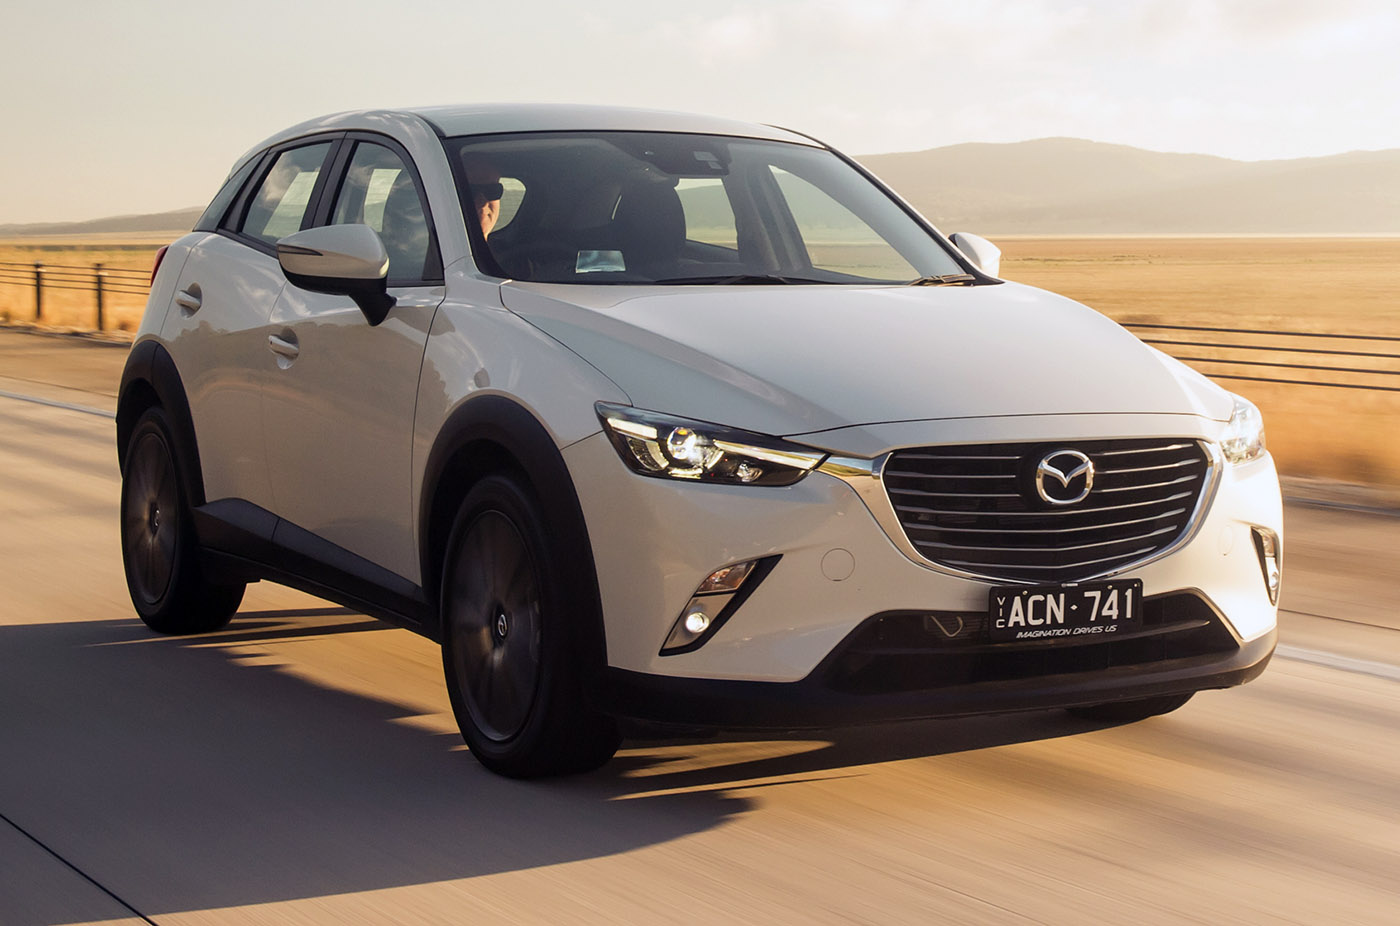 The Week That Was: Mazda CX-3, Peugeot 508 & 3008, Subaru Forester